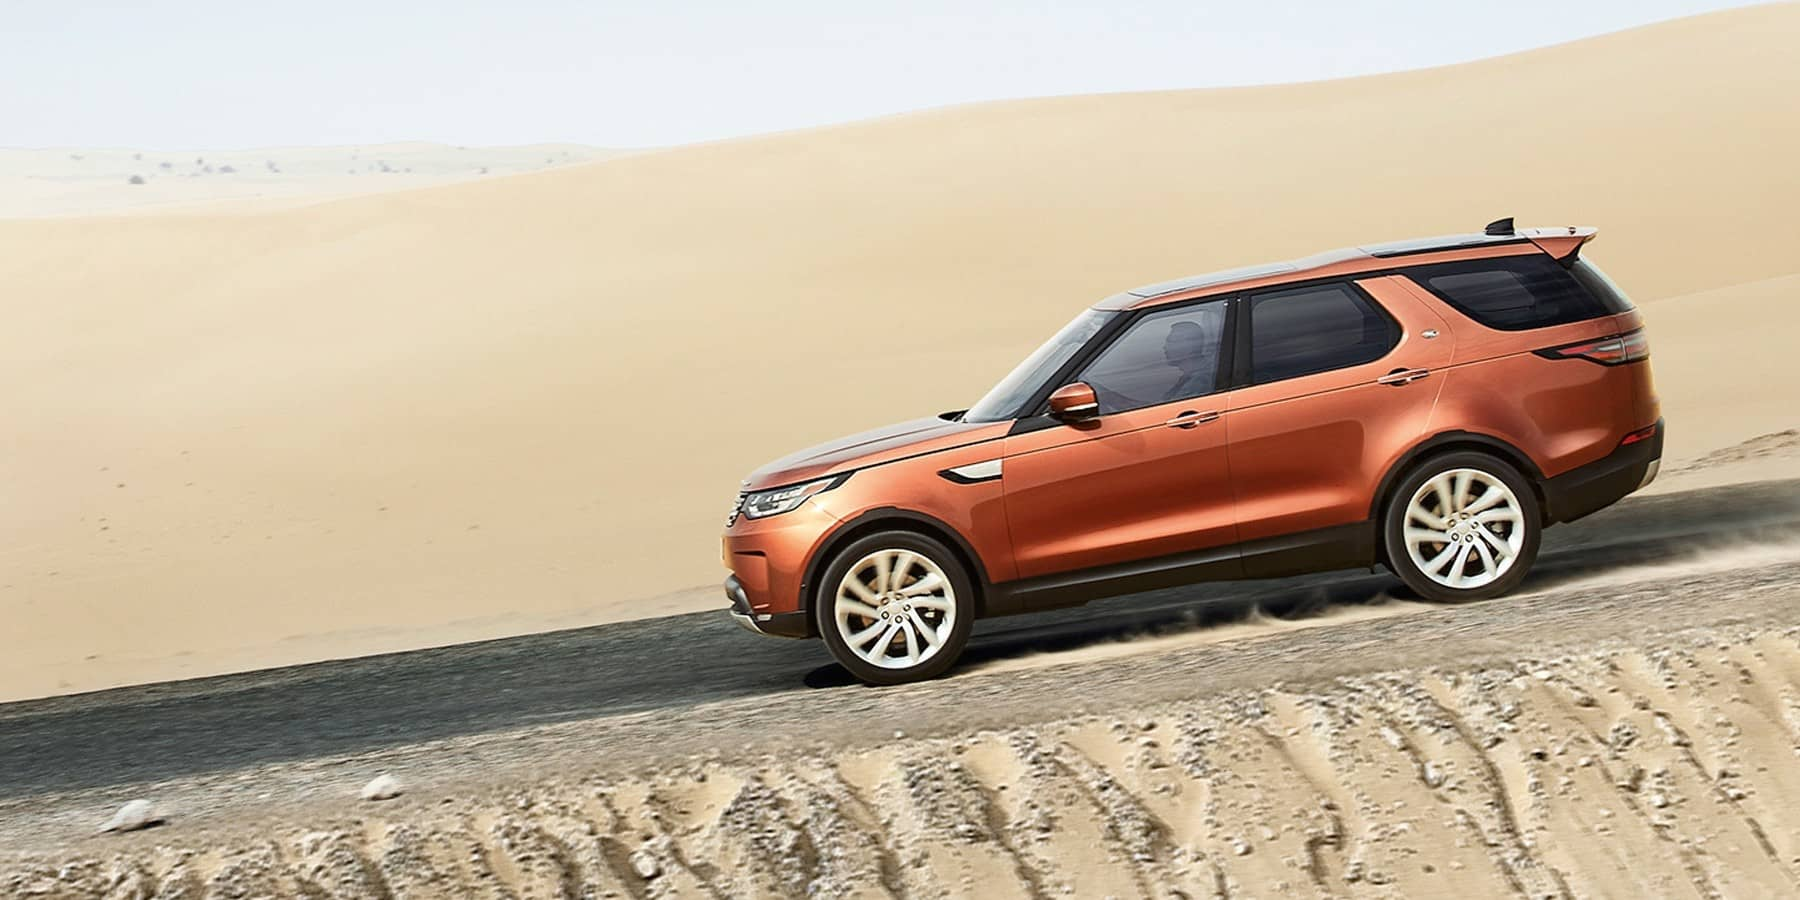 Land Rover Dealer In Paramus Nj >> Land Rover Monmouth In Ocean Nj New Used Cars | Autos Post